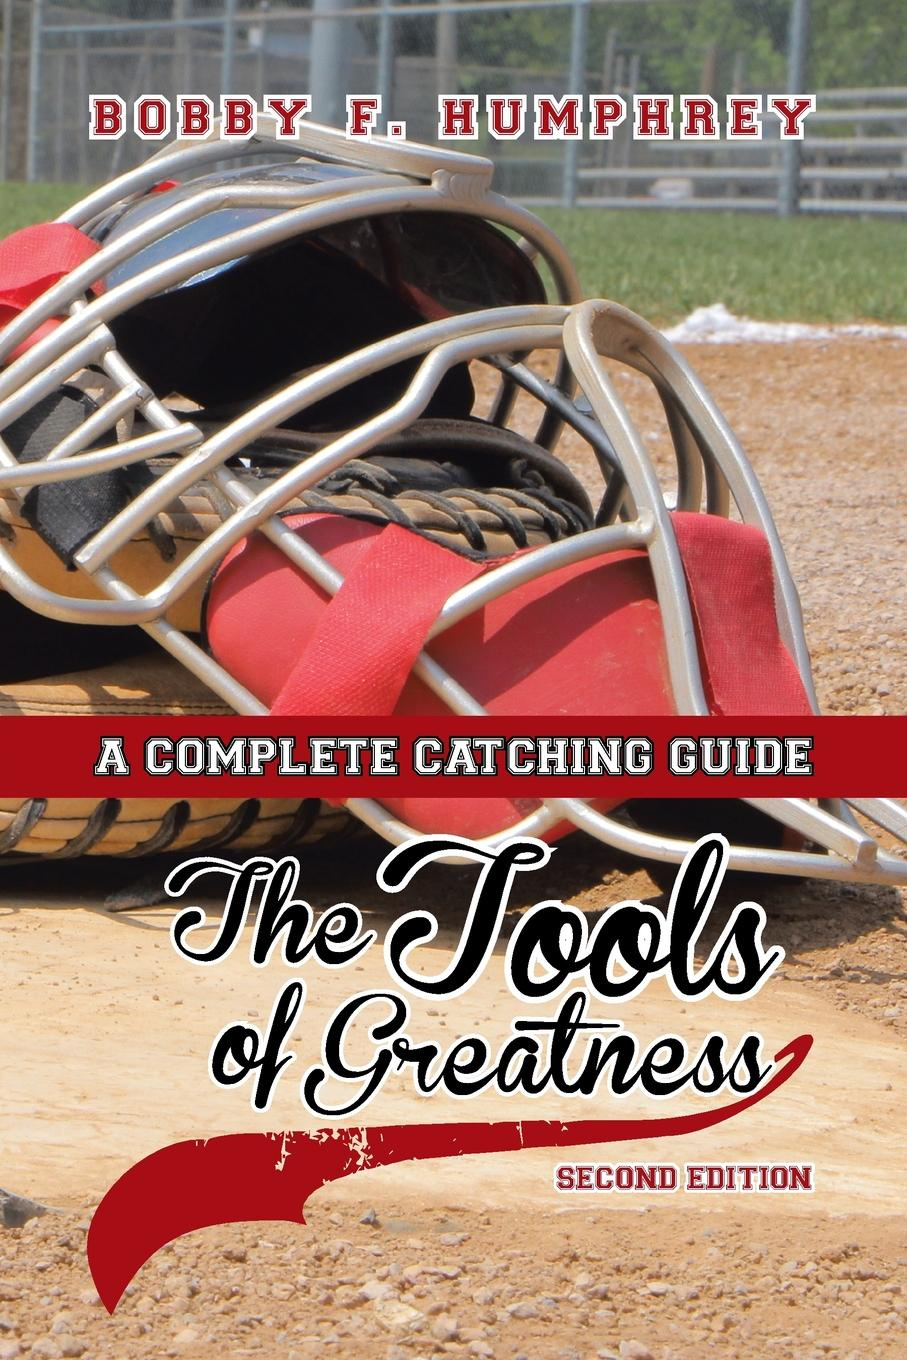 Фото - Bobby F. Humphrey The Tools of Greatness. A Complete Catching Guide Second Edition collins s catching fire movie tie in edition